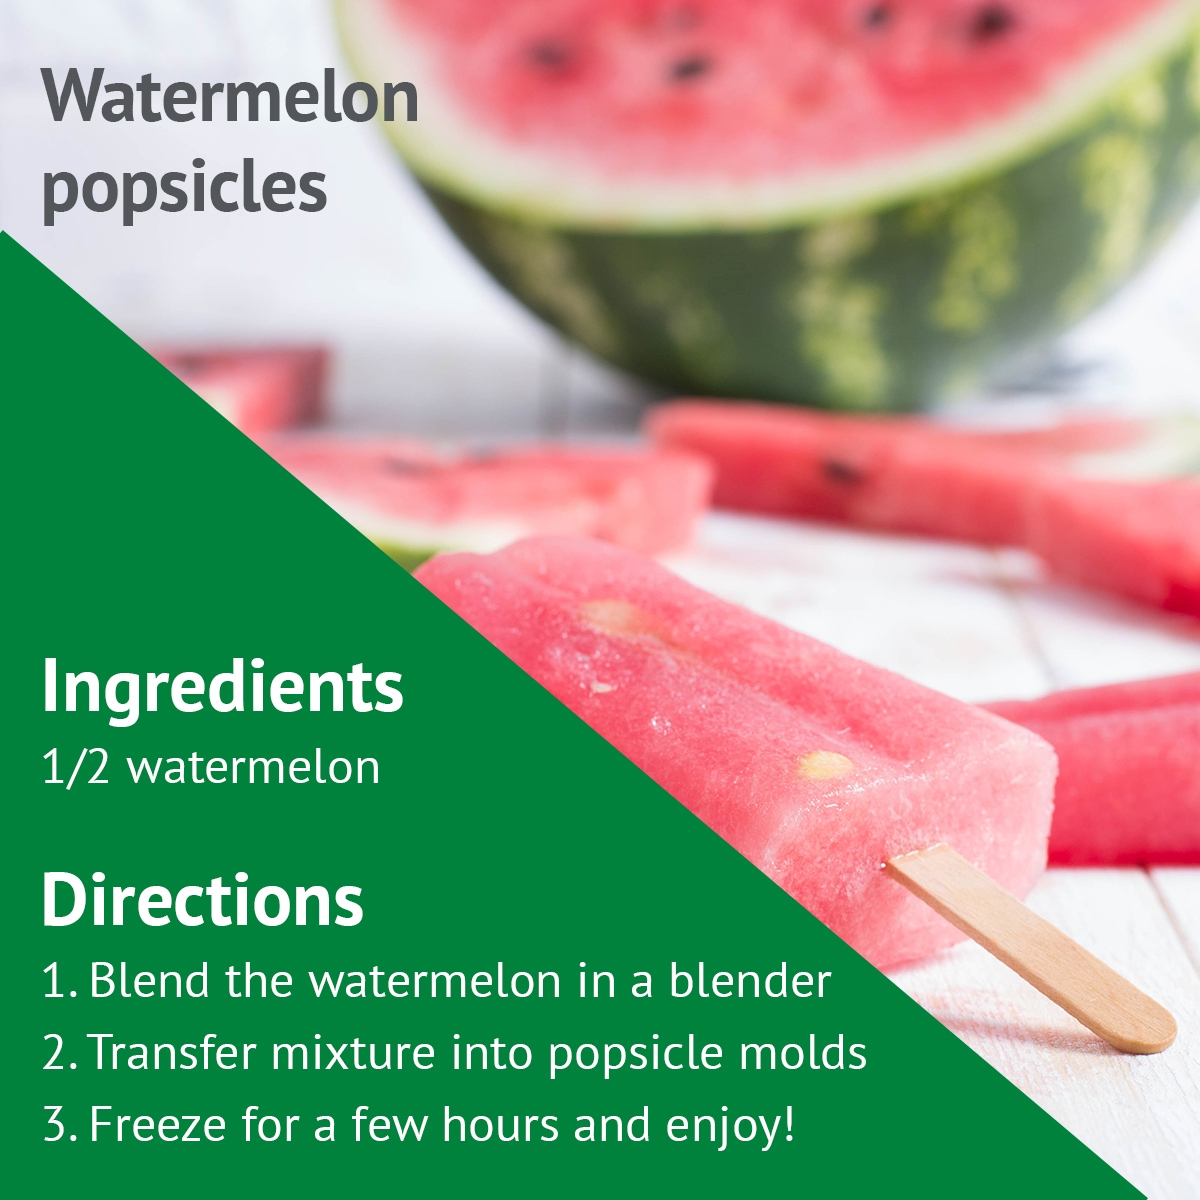 Phelps Hospital Watermelon Popsicle Recipe 2019